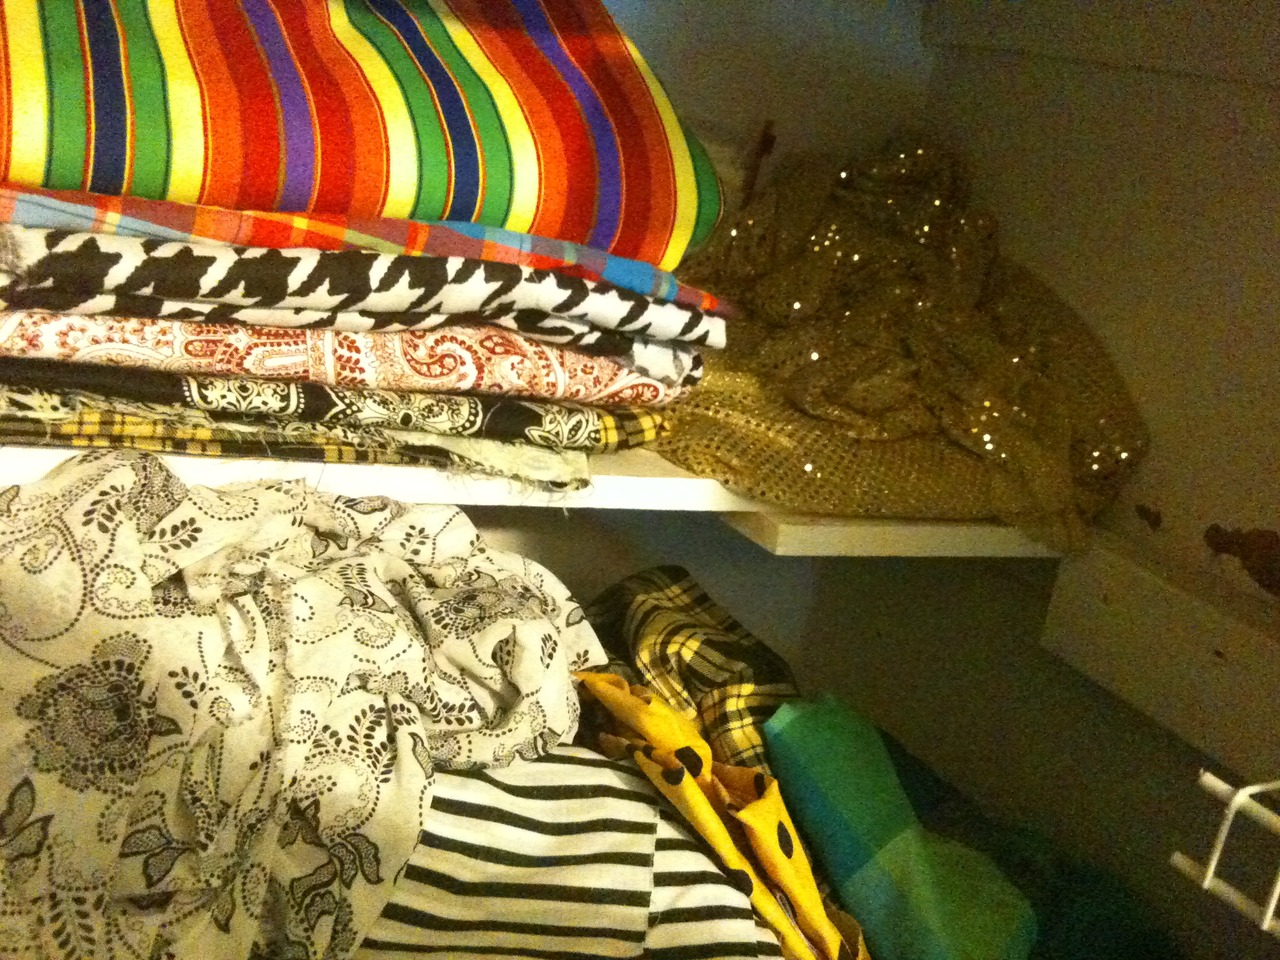 Don't want to use the same backgrounds twice but what do I do with all this fabric!?